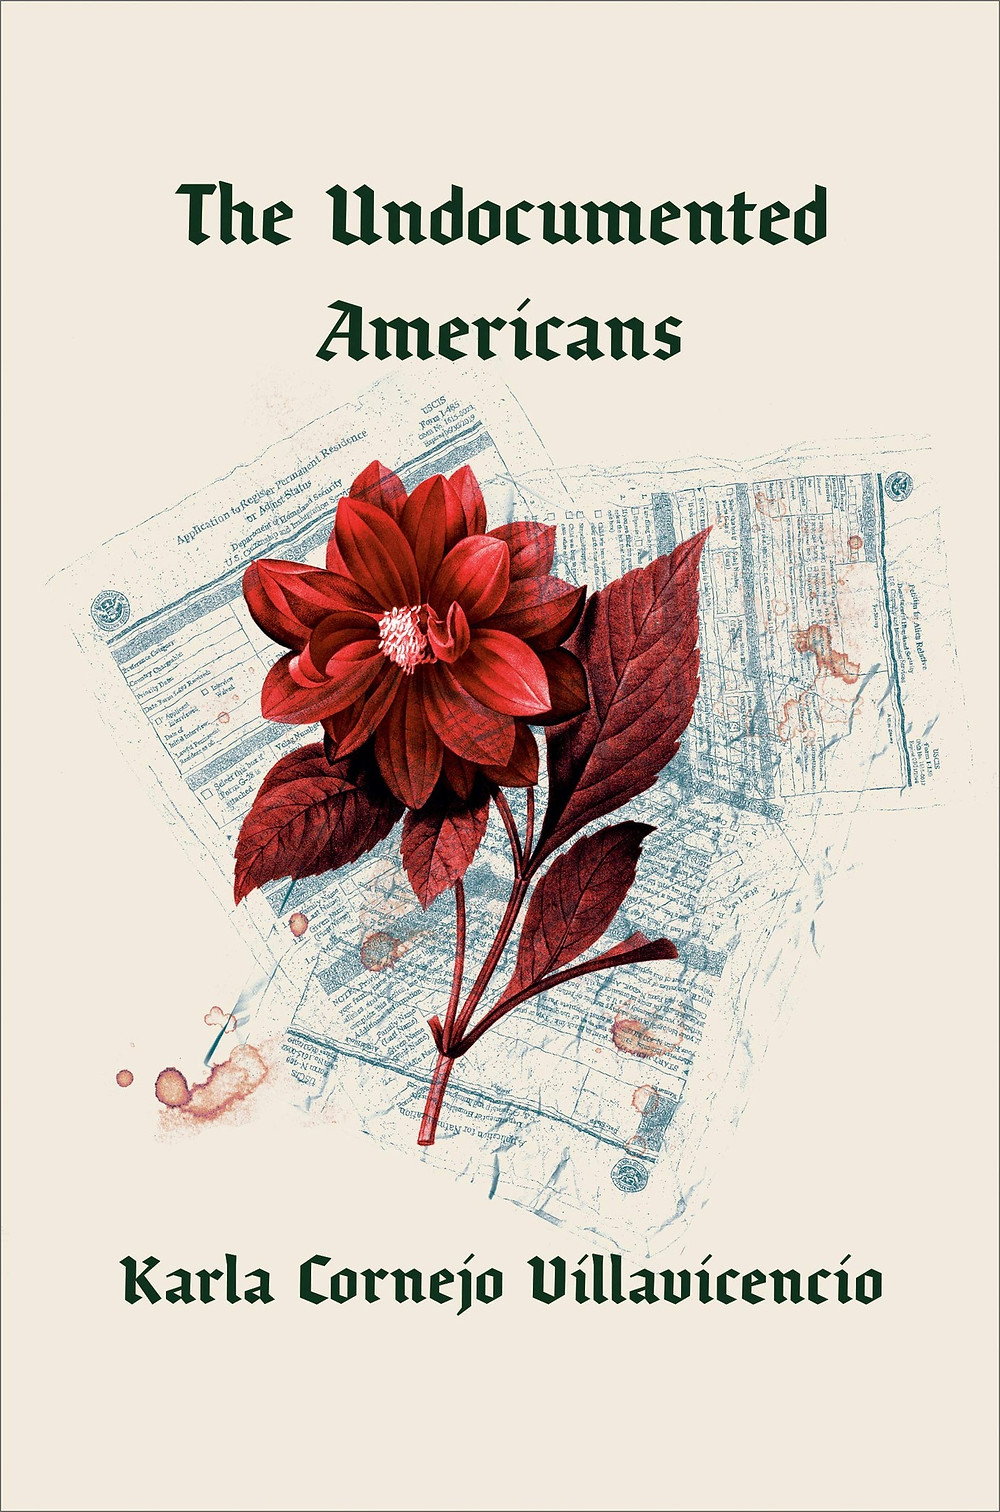 The Undocumented Americans By Karla Cornejo Villavicencio 208 pages. 24 Mar 2020. One World Publishers thebookslut book reviews the book slut